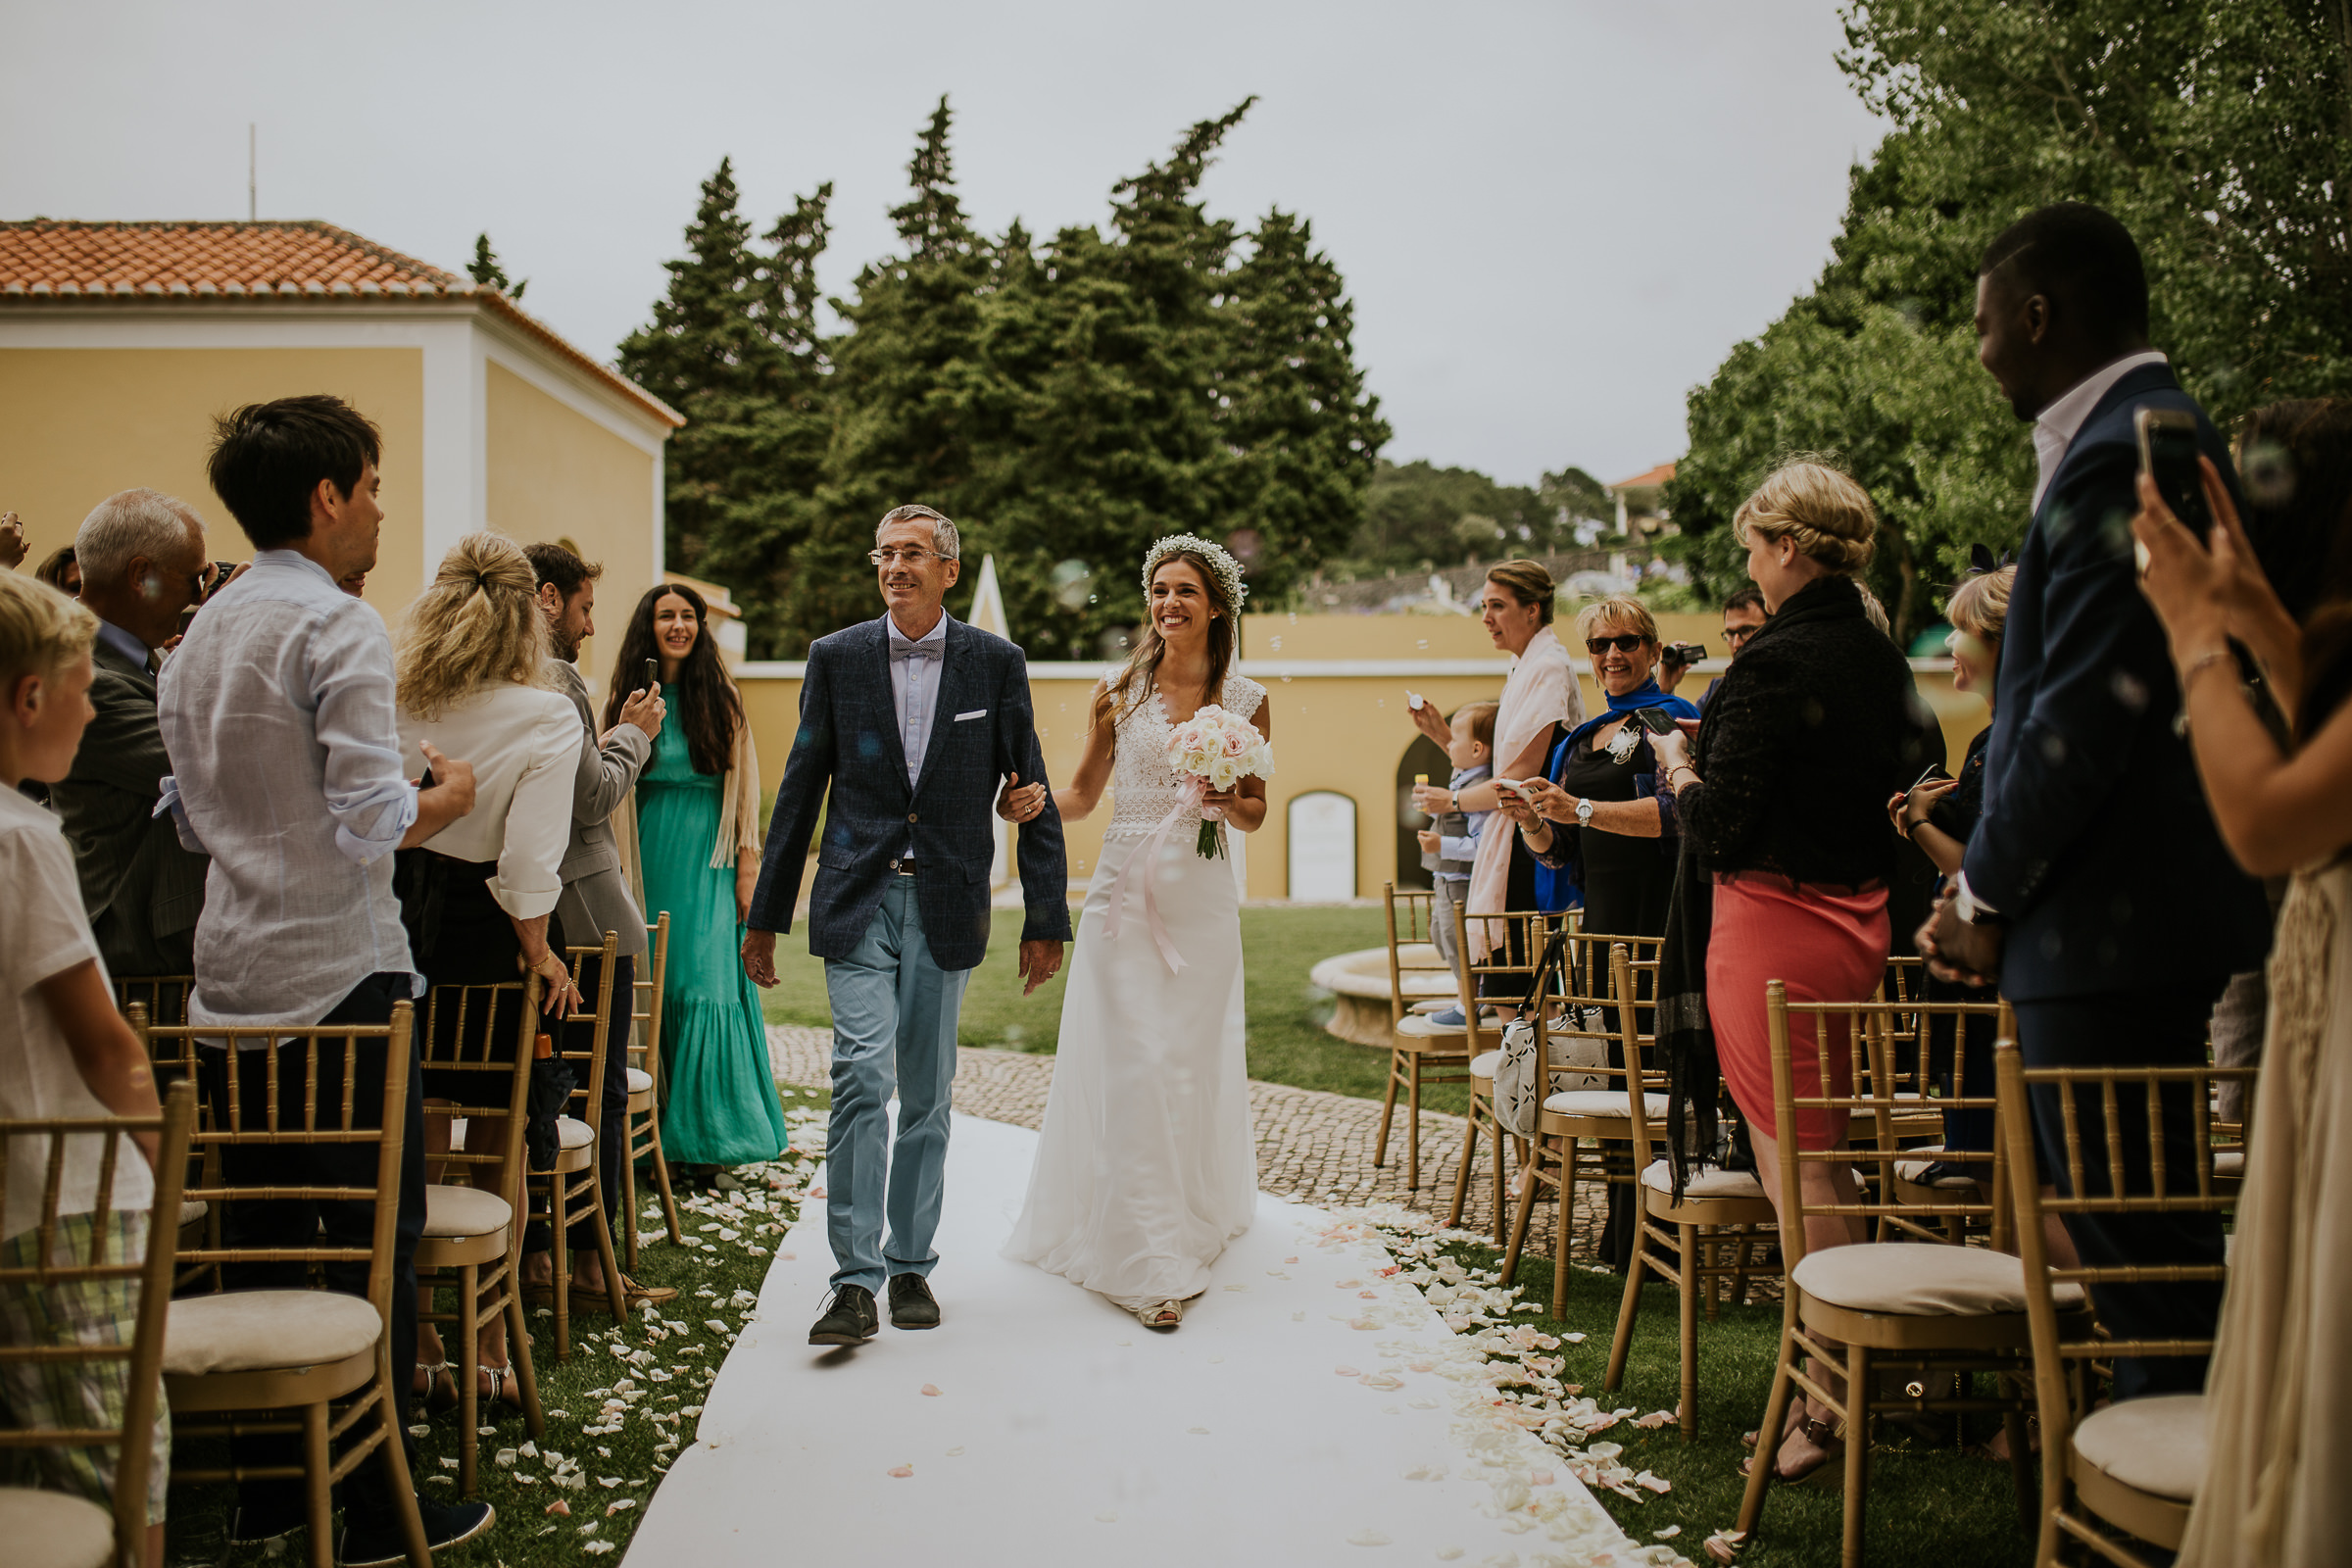 Father walk the bride down the aisle in an outdoor ceremony